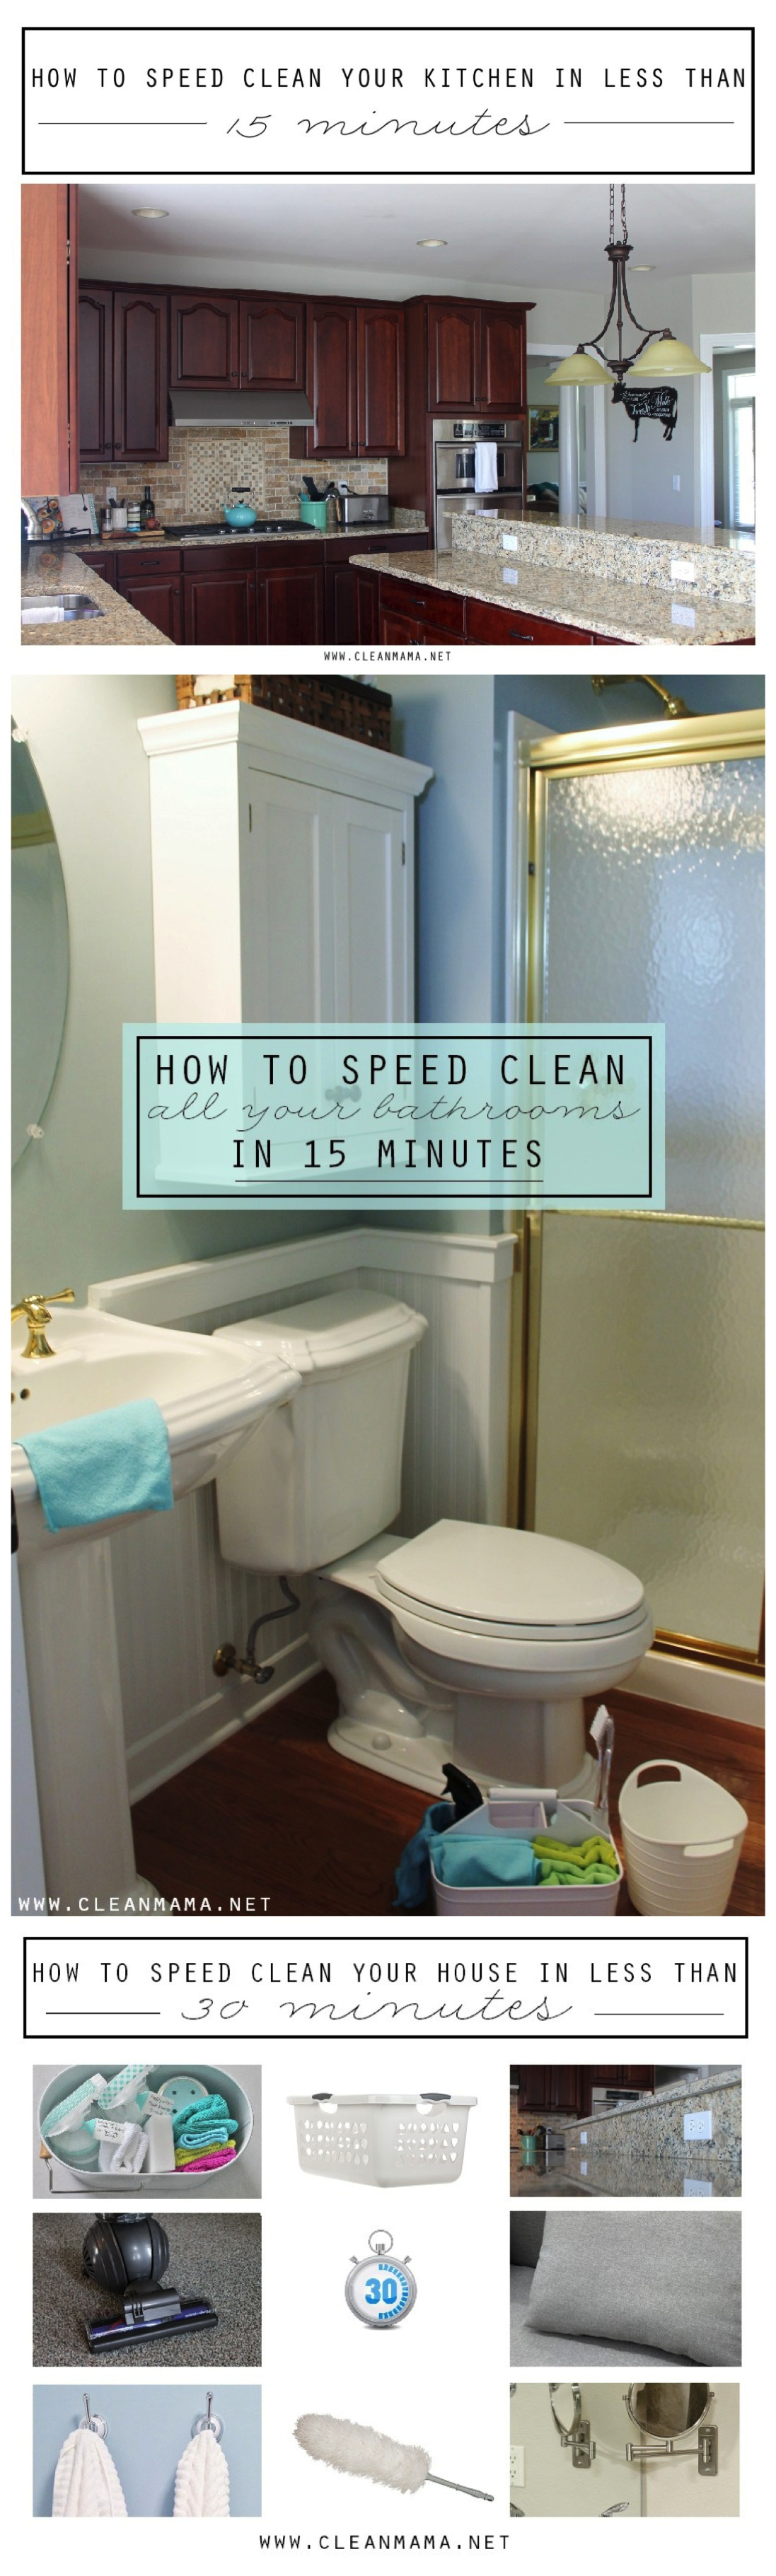 Speed Cleaning 101 via Clean Mama